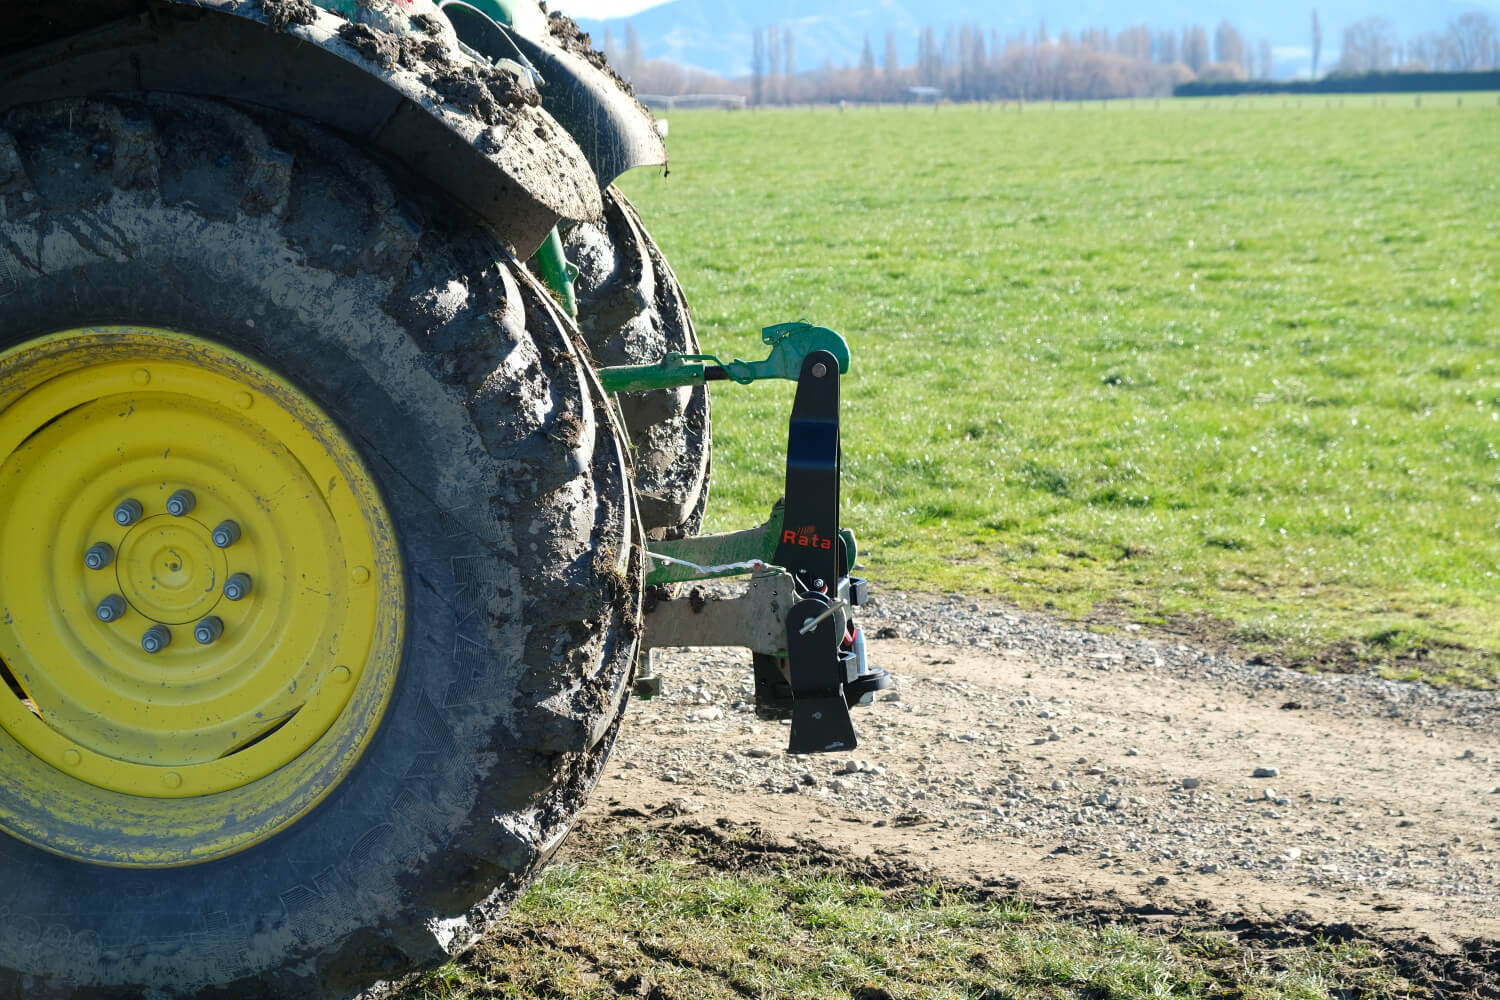 2021 3PLDH2 on Tractor (1)